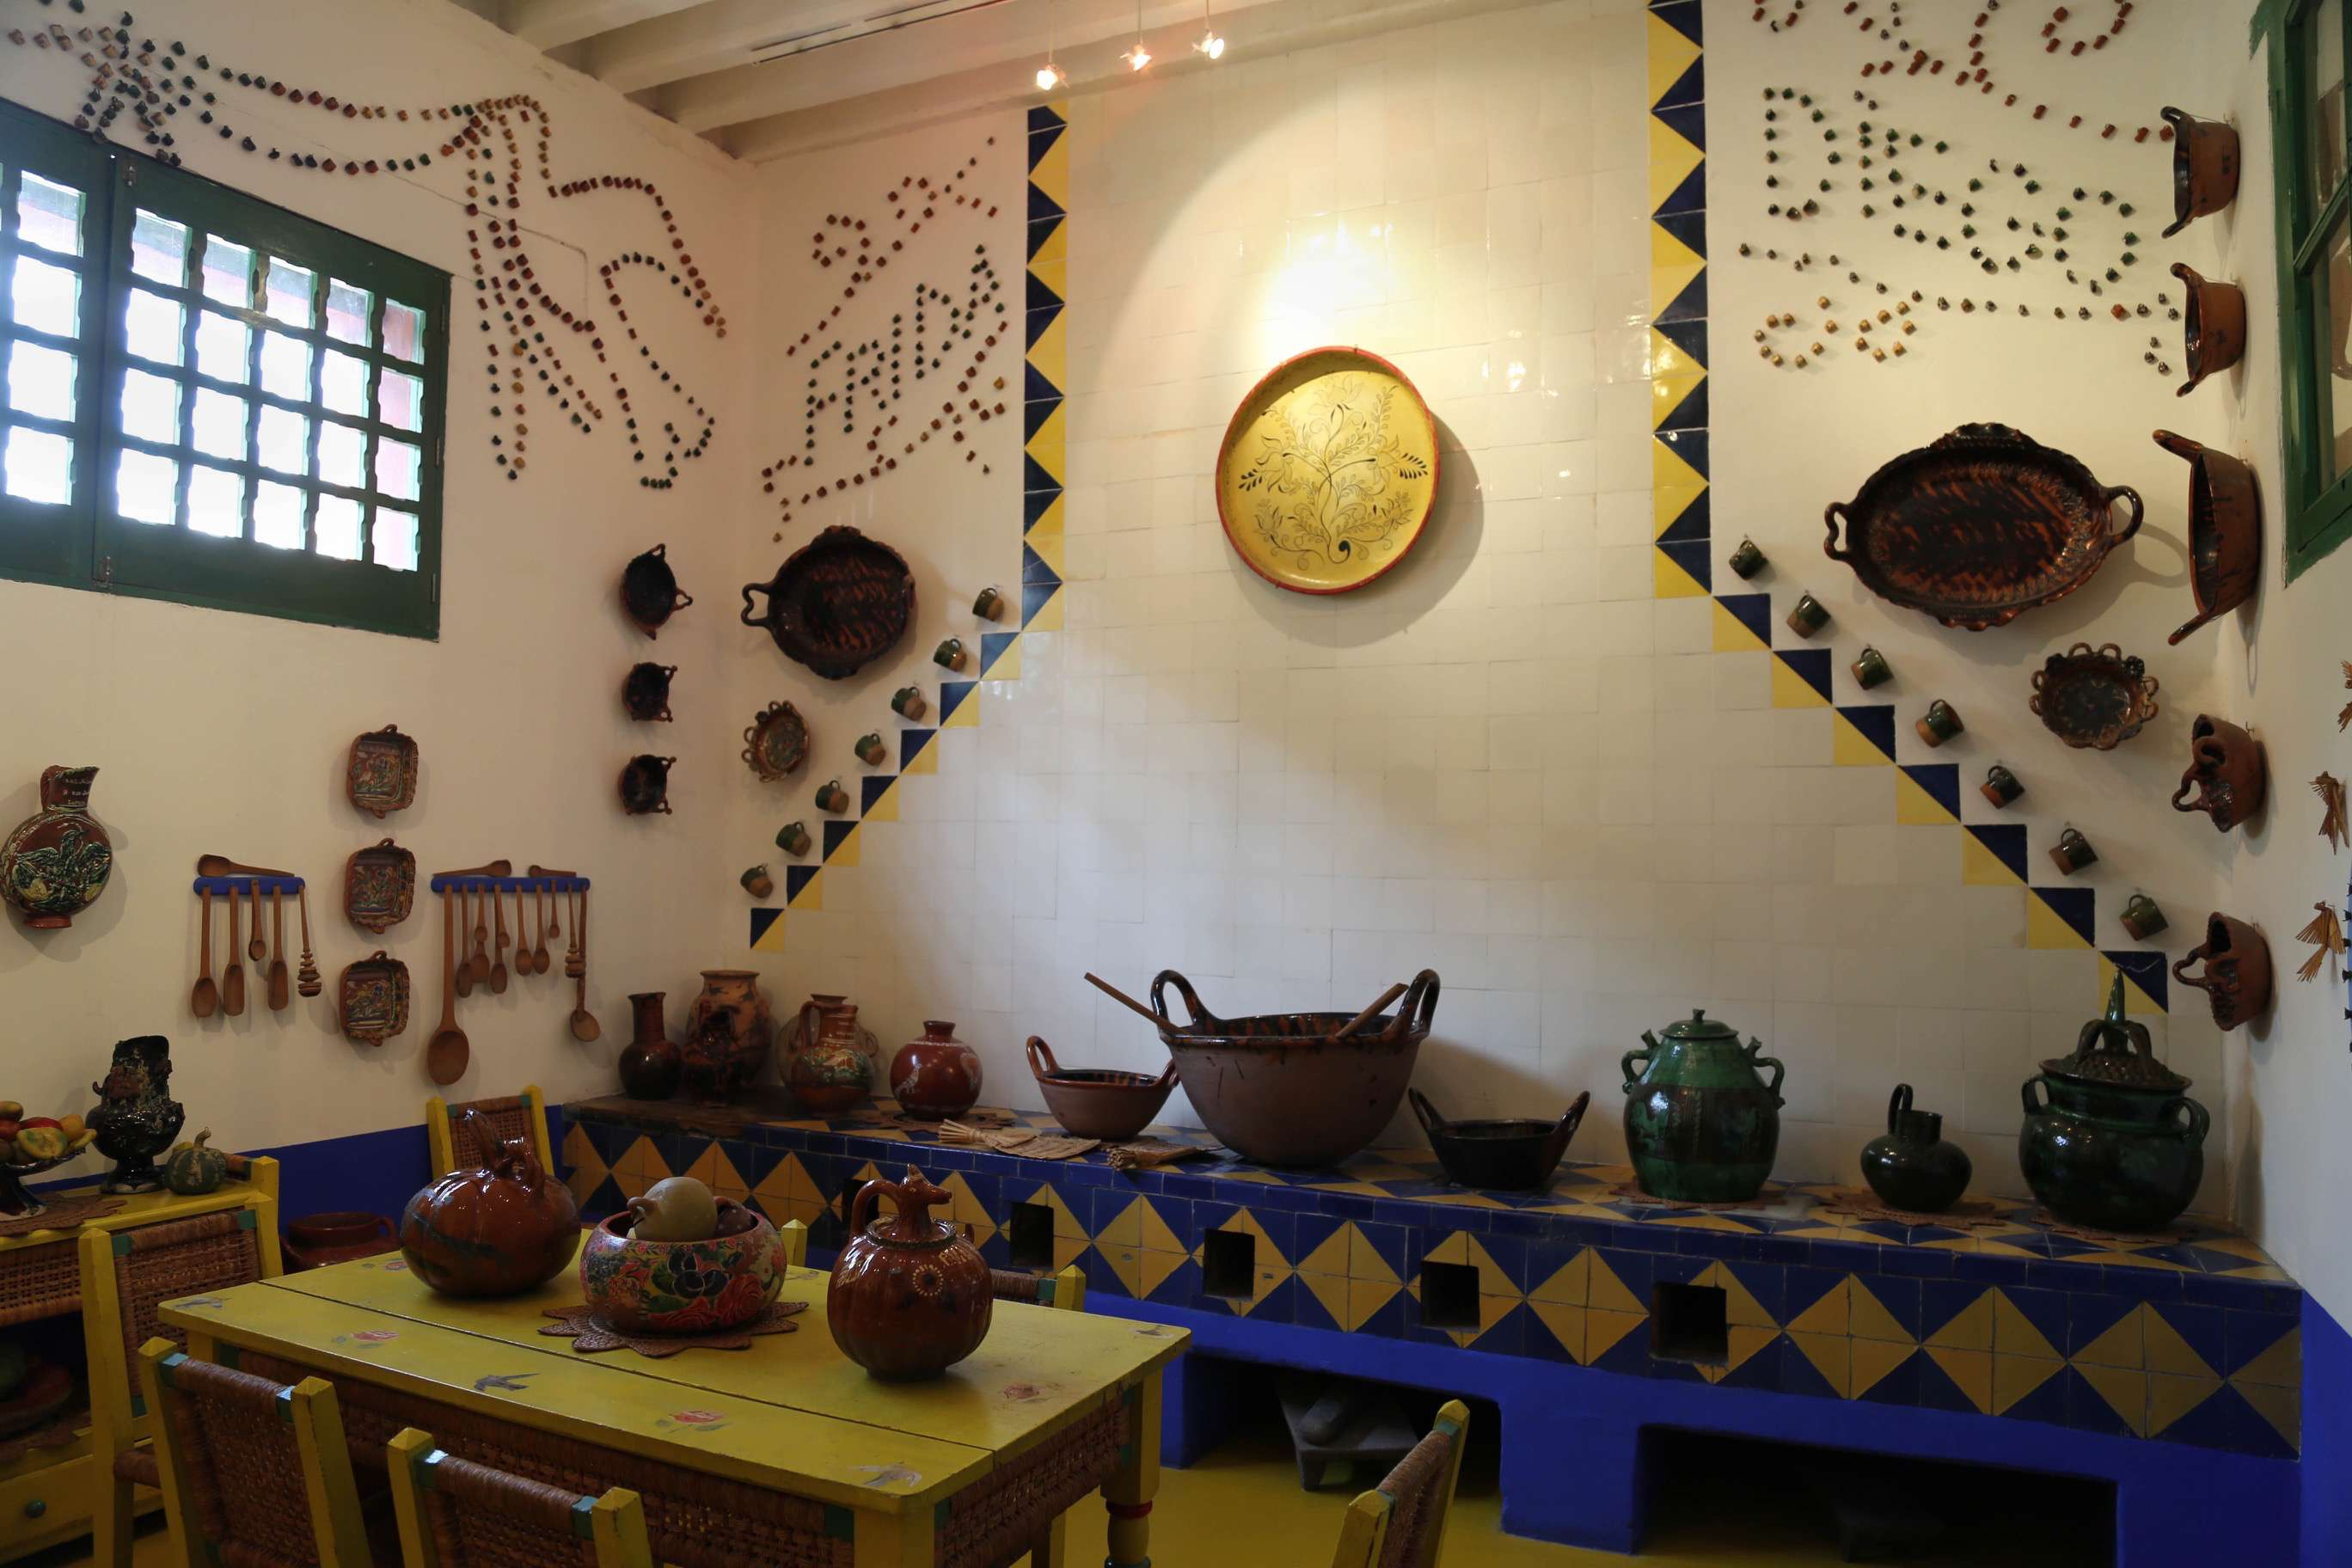 The kitchen at Casa Azul. Though modern stoves and ovens were available, Frida Kahlo and Diego Rivera liked to cook in a more traditional manner.